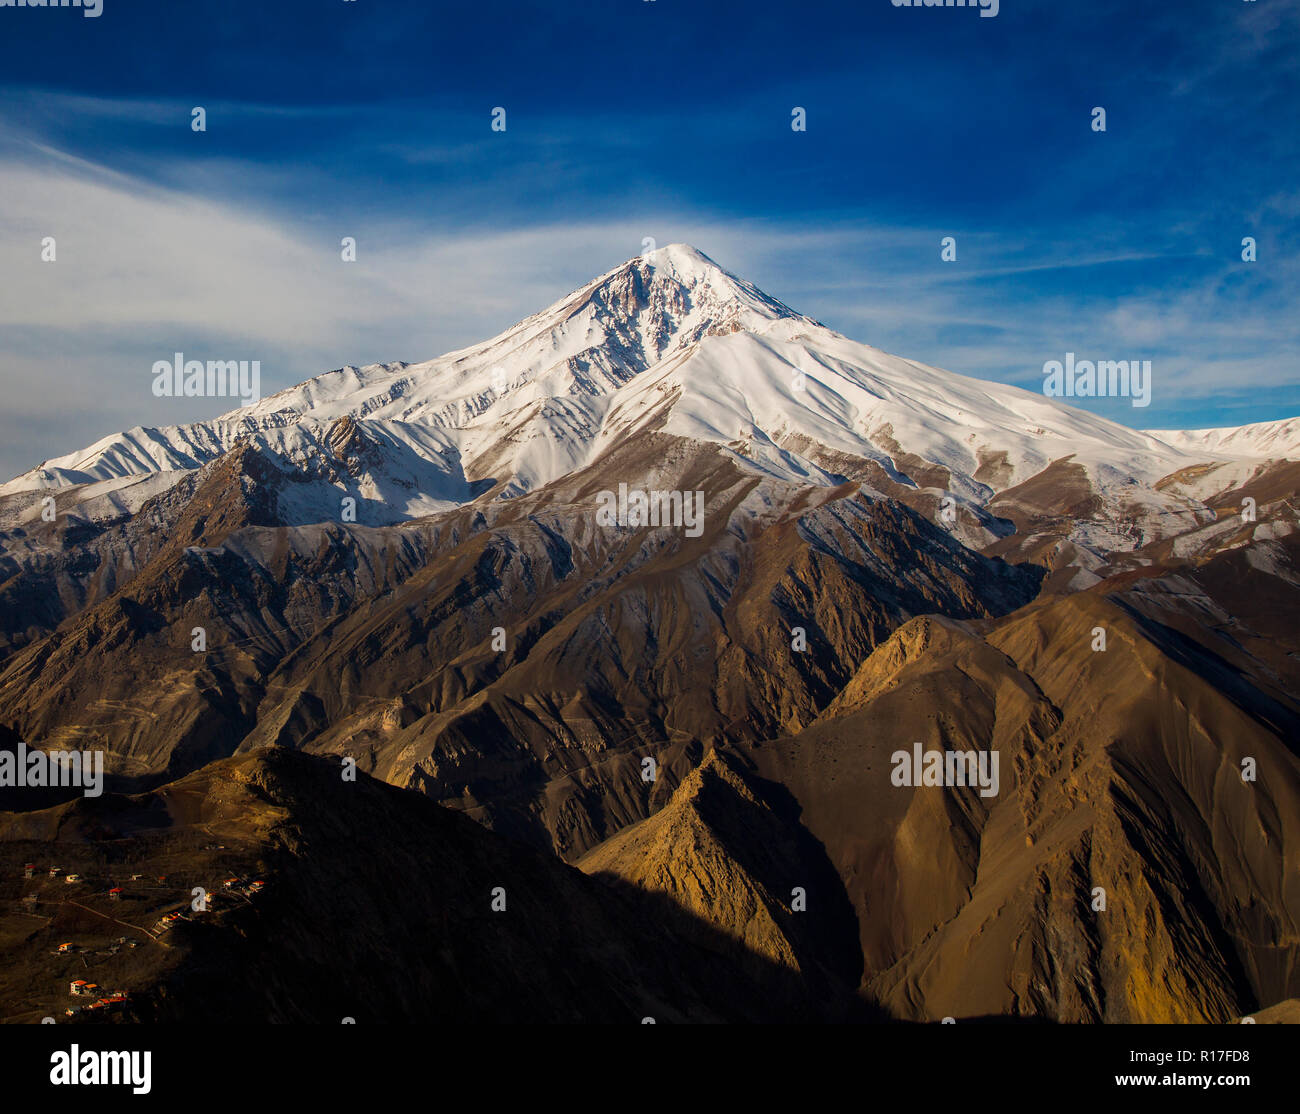 Mount Damavand, a potentially active volcano, is a stratovolcano which is the highest peak in Iran and the highest volcano in Asia. - Stock Image